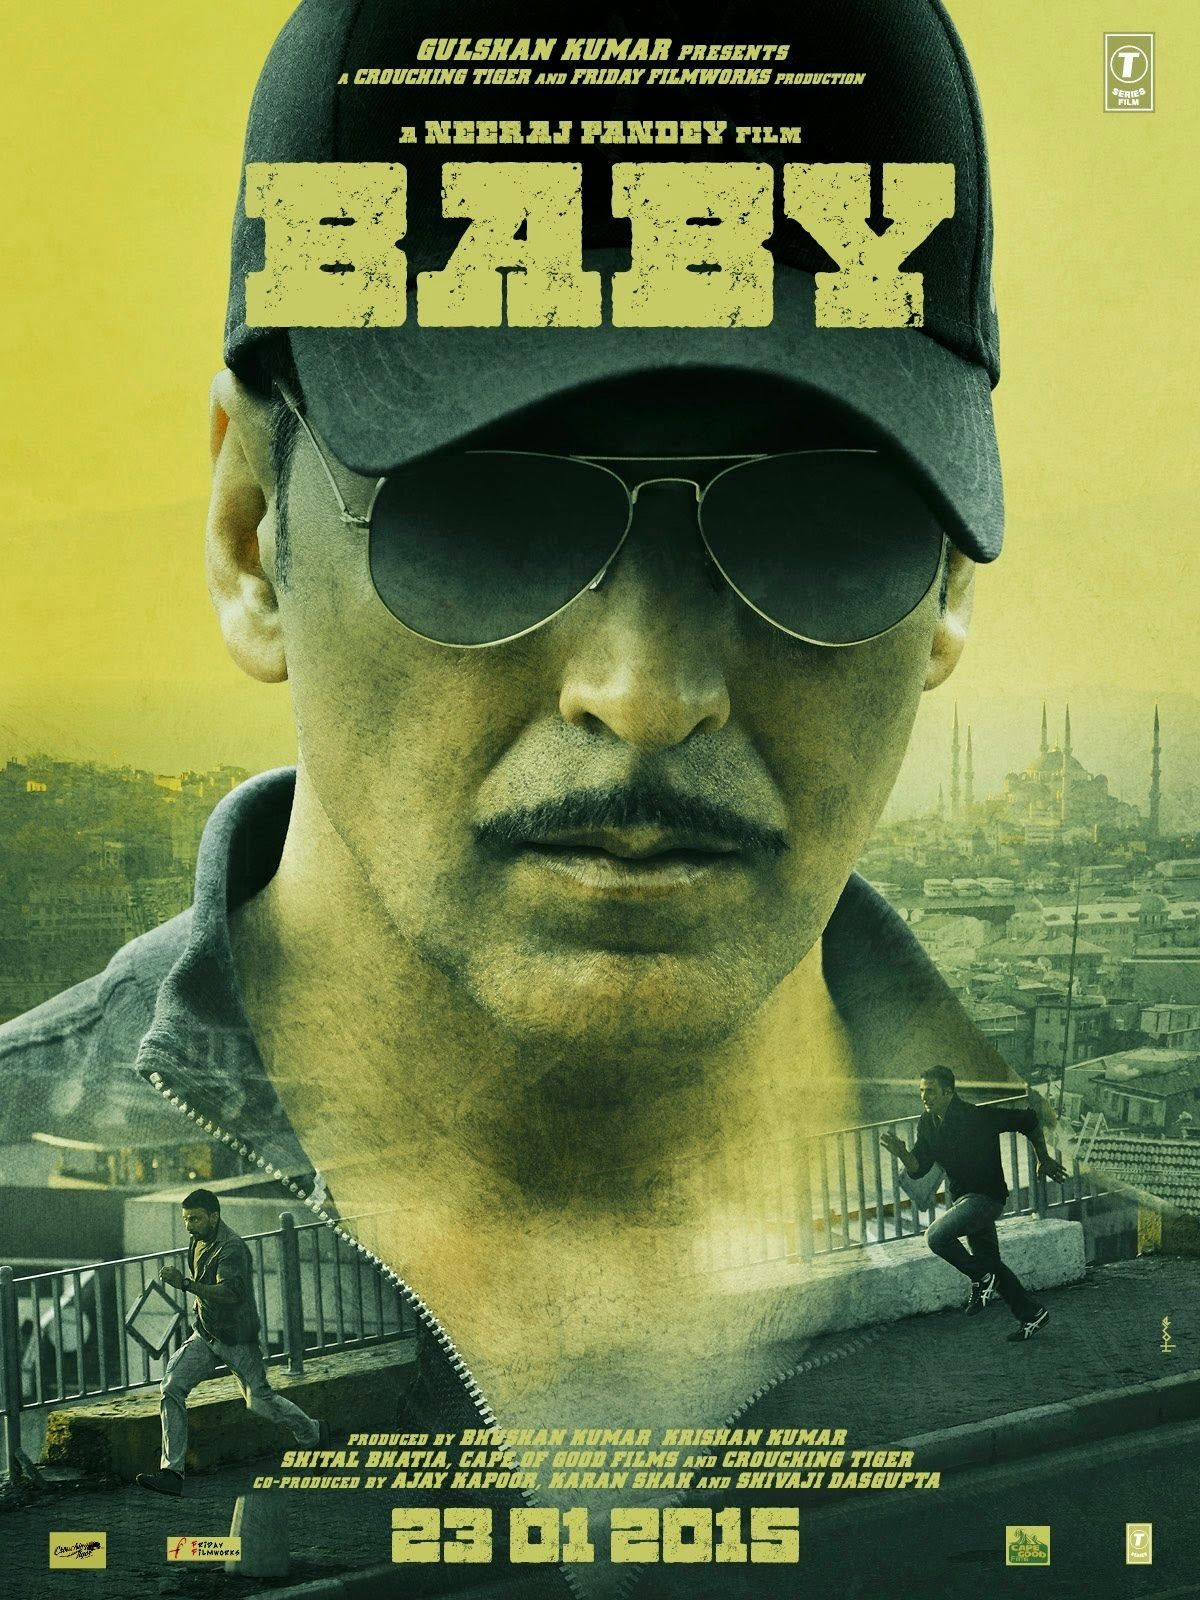 Baby 2015 Hindi Dubbed Full Movie Download 720p Hd District For All